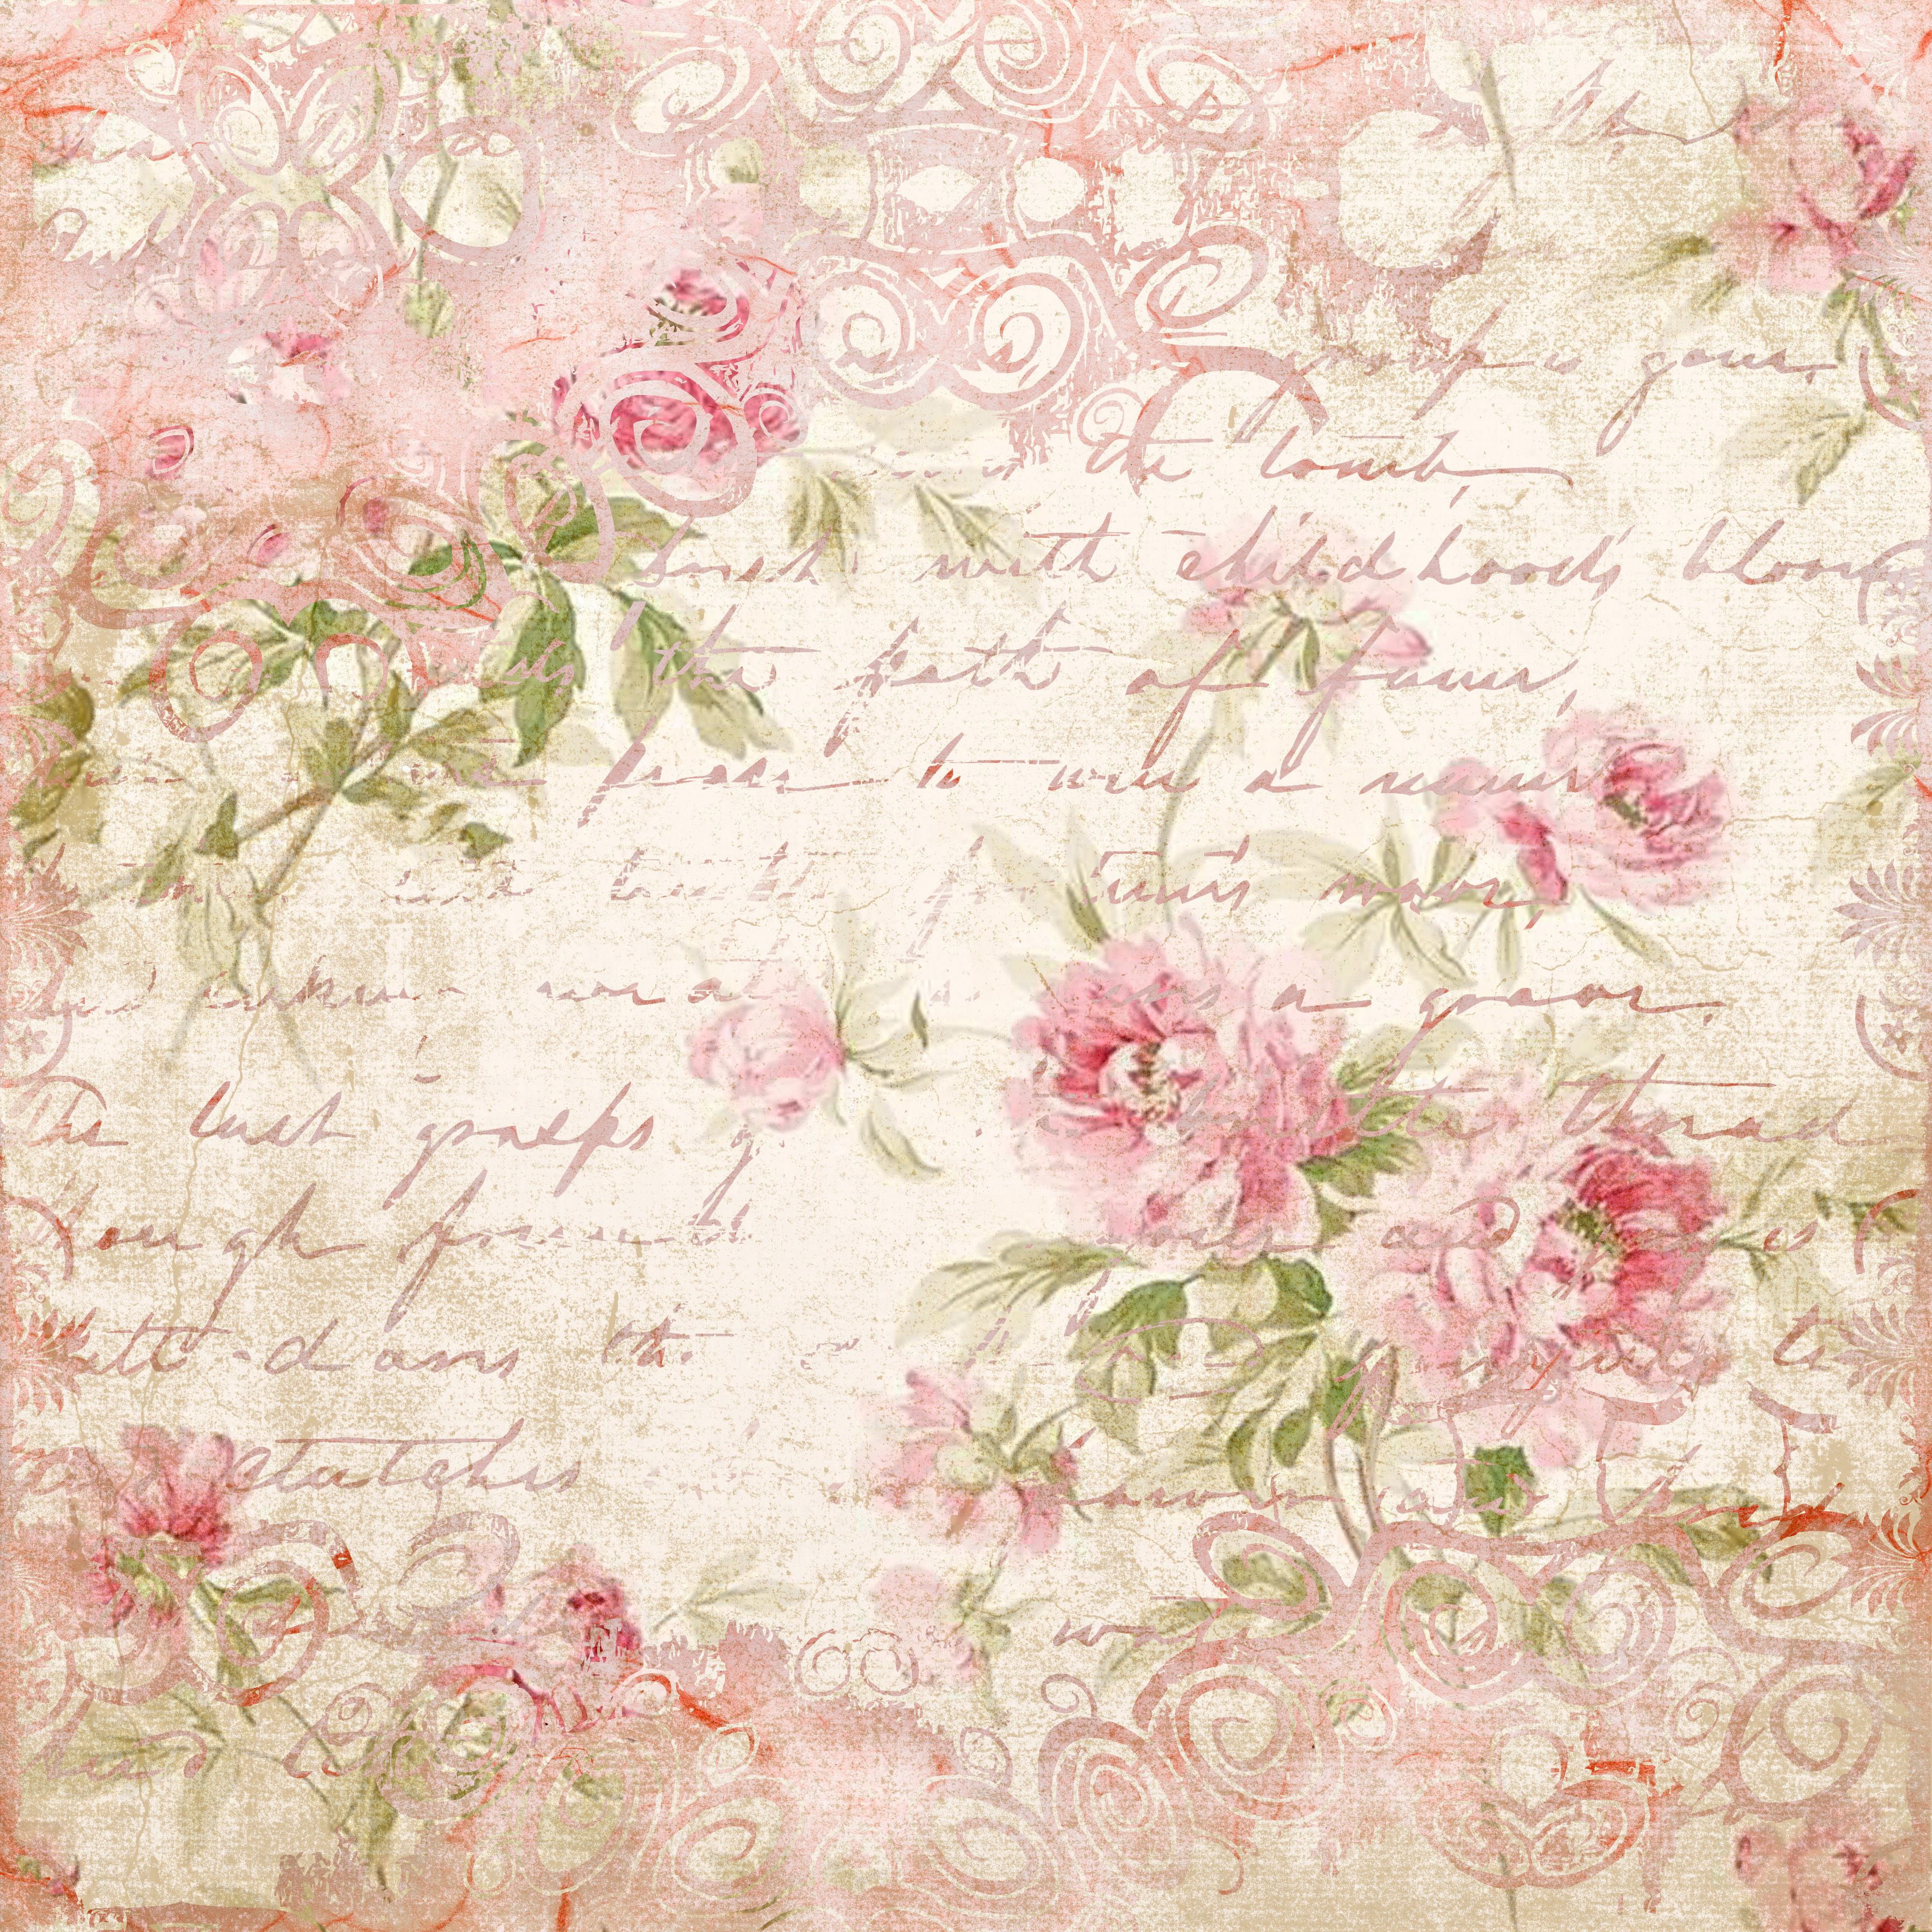 roses on writing shabby chic pinterest decoupage. Black Bedroom Furniture Sets. Home Design Ideas